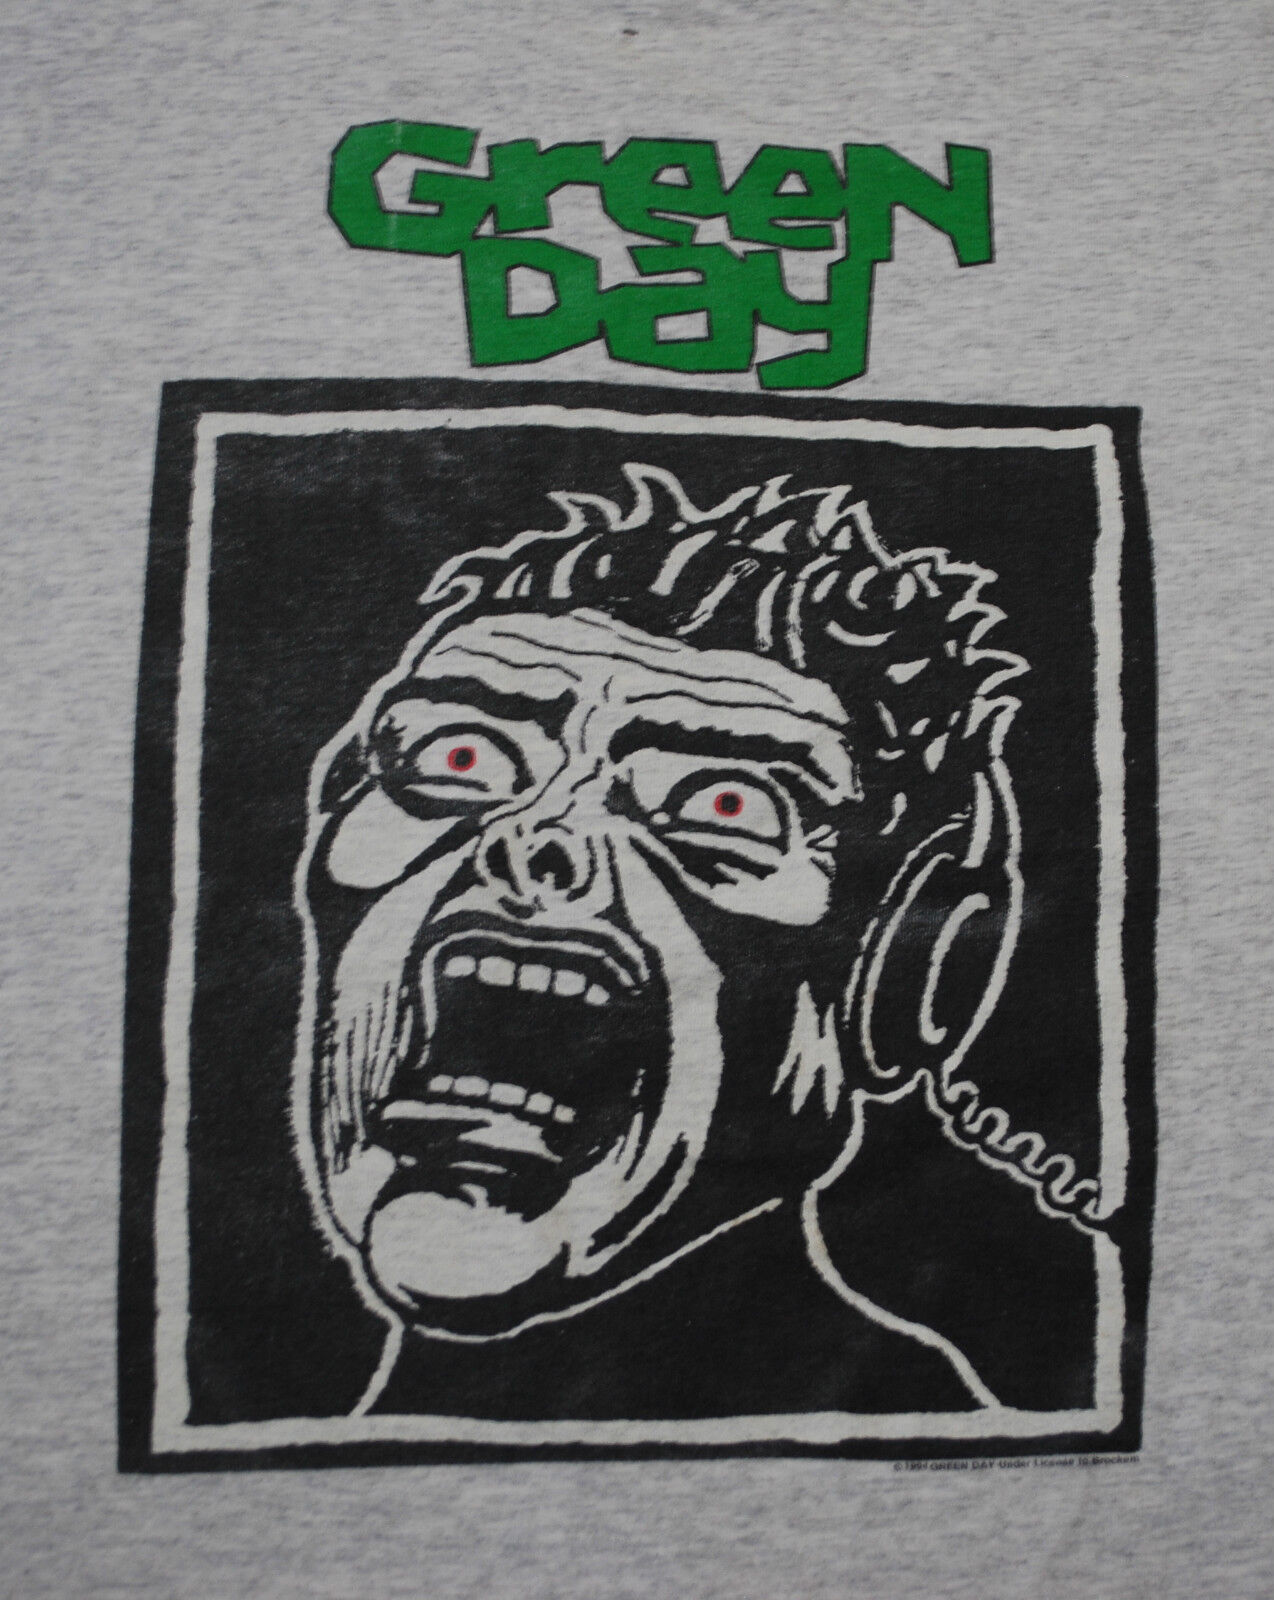 Shirt rip design - Not A Bad Looking Design Though It S Not The Insight Rip Off Which Is My Favorite For The Band So Far